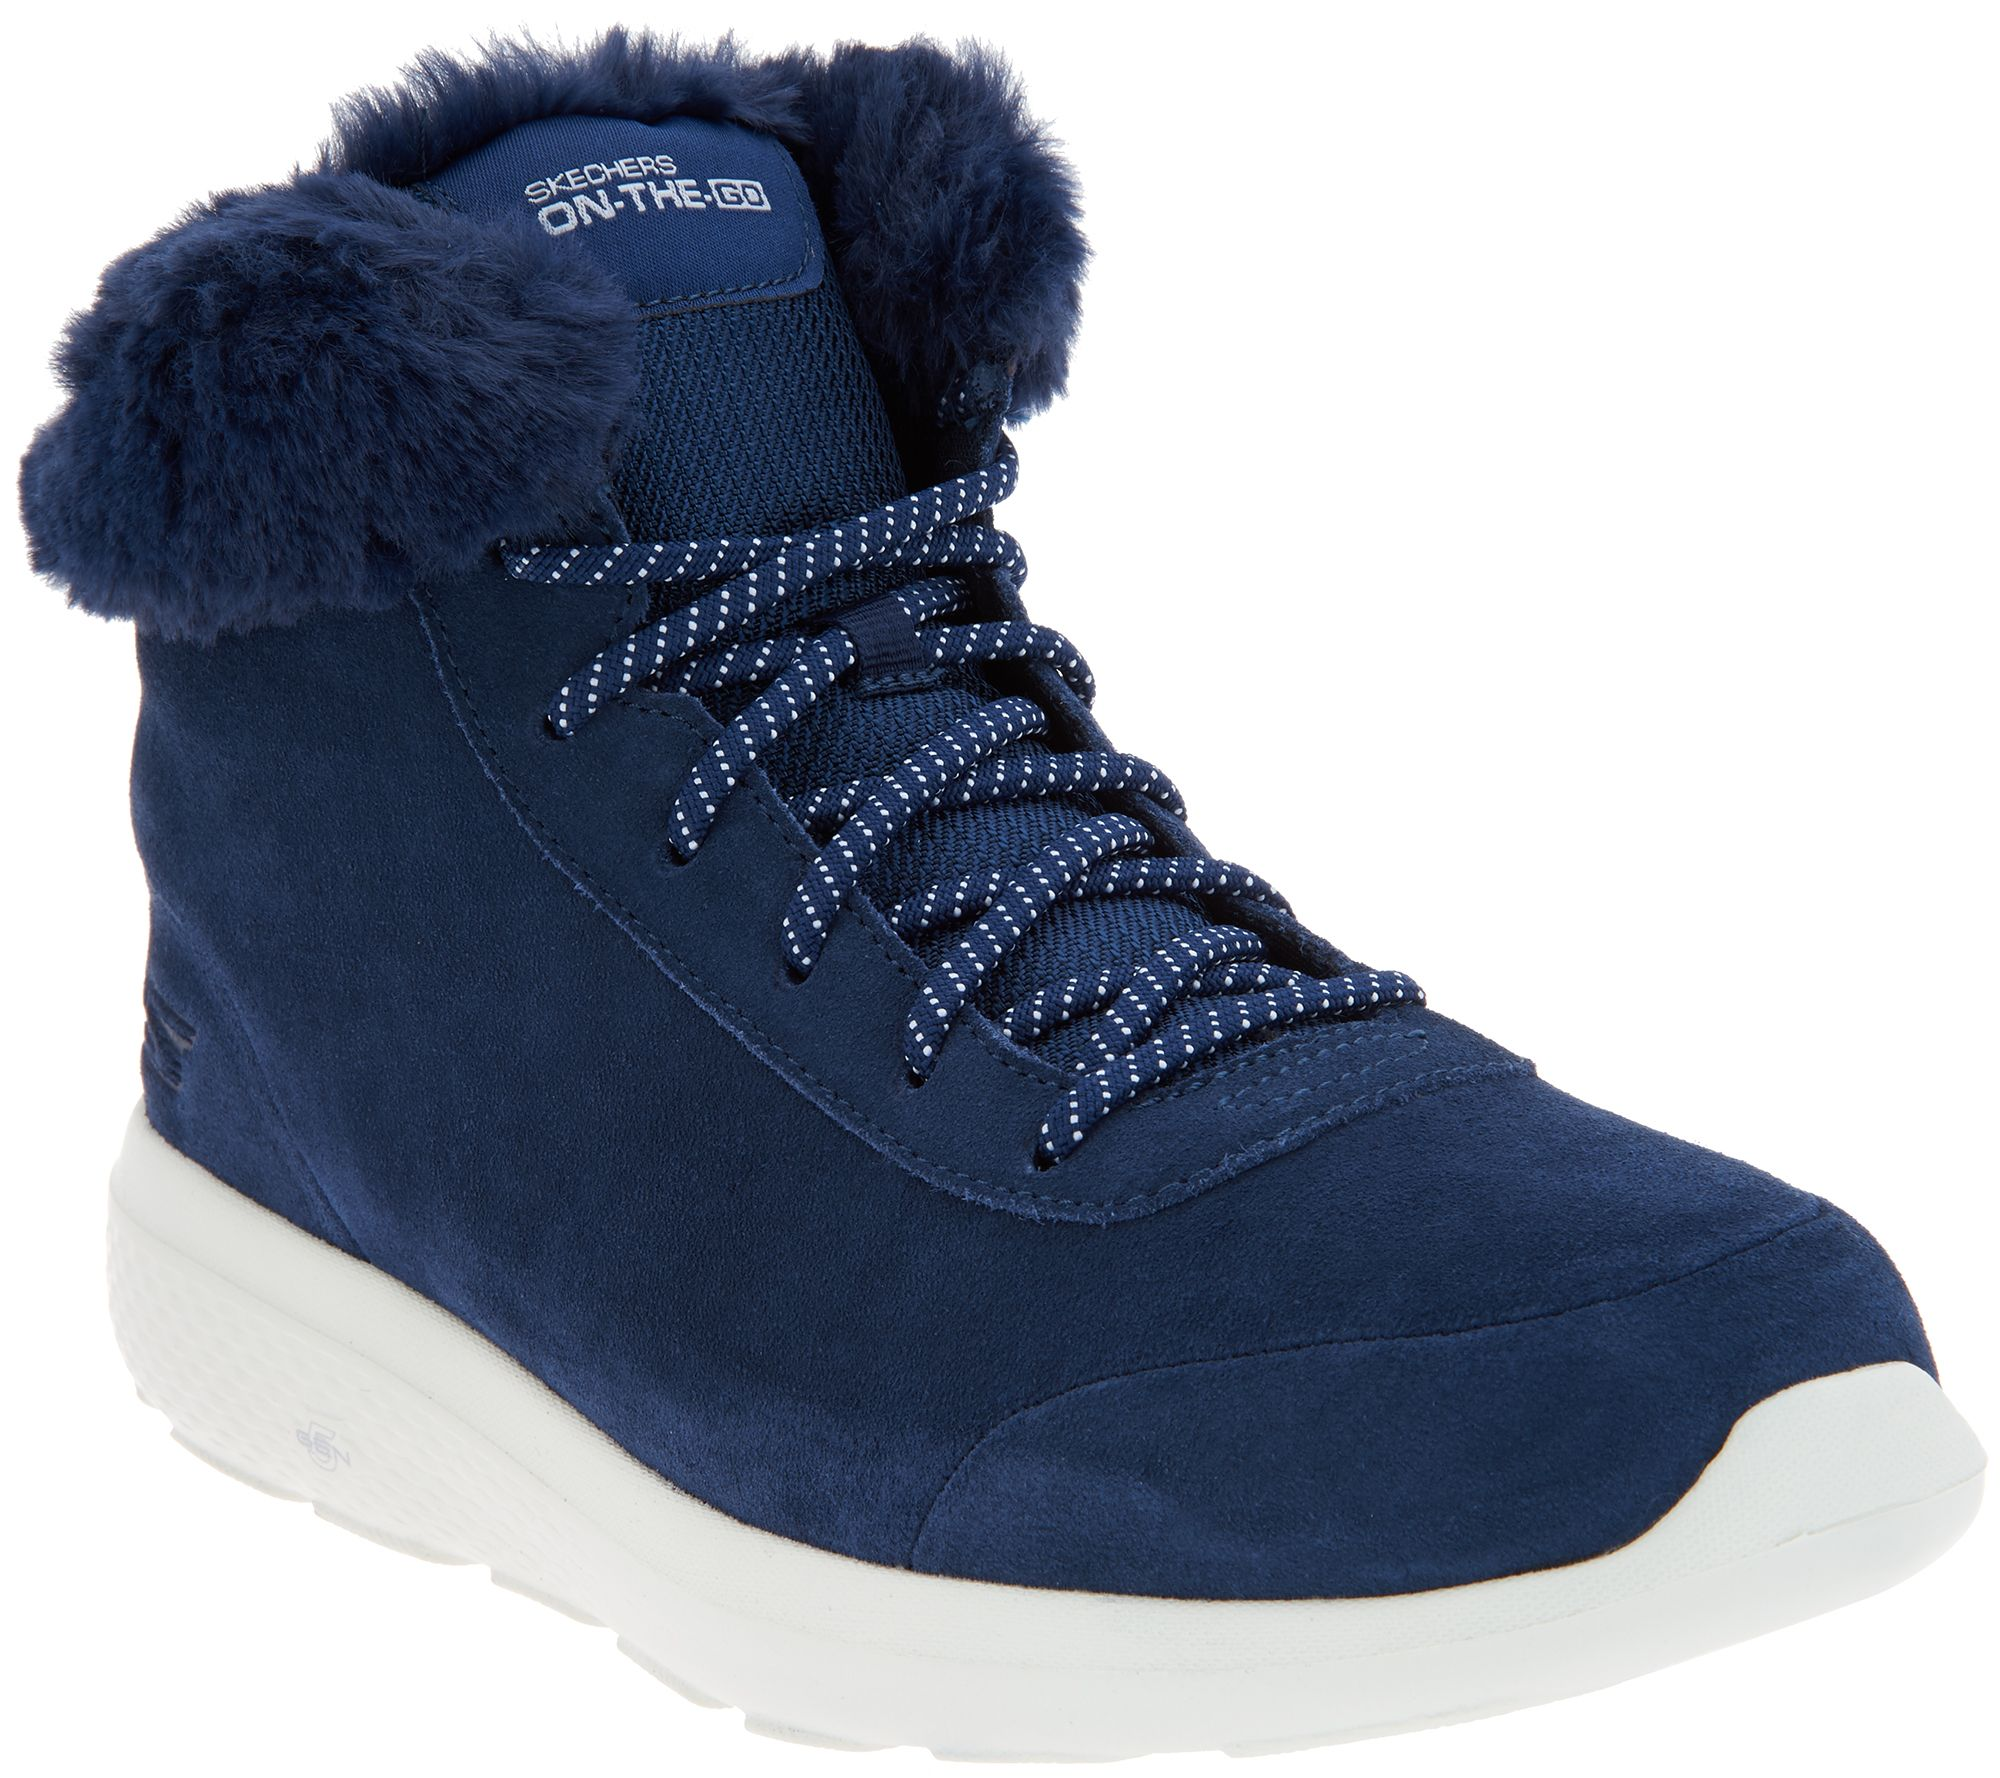 exclusive deals buying new great deals Skechers On-the-GO Suede Boots - City 2 - Chilled — QVC.com